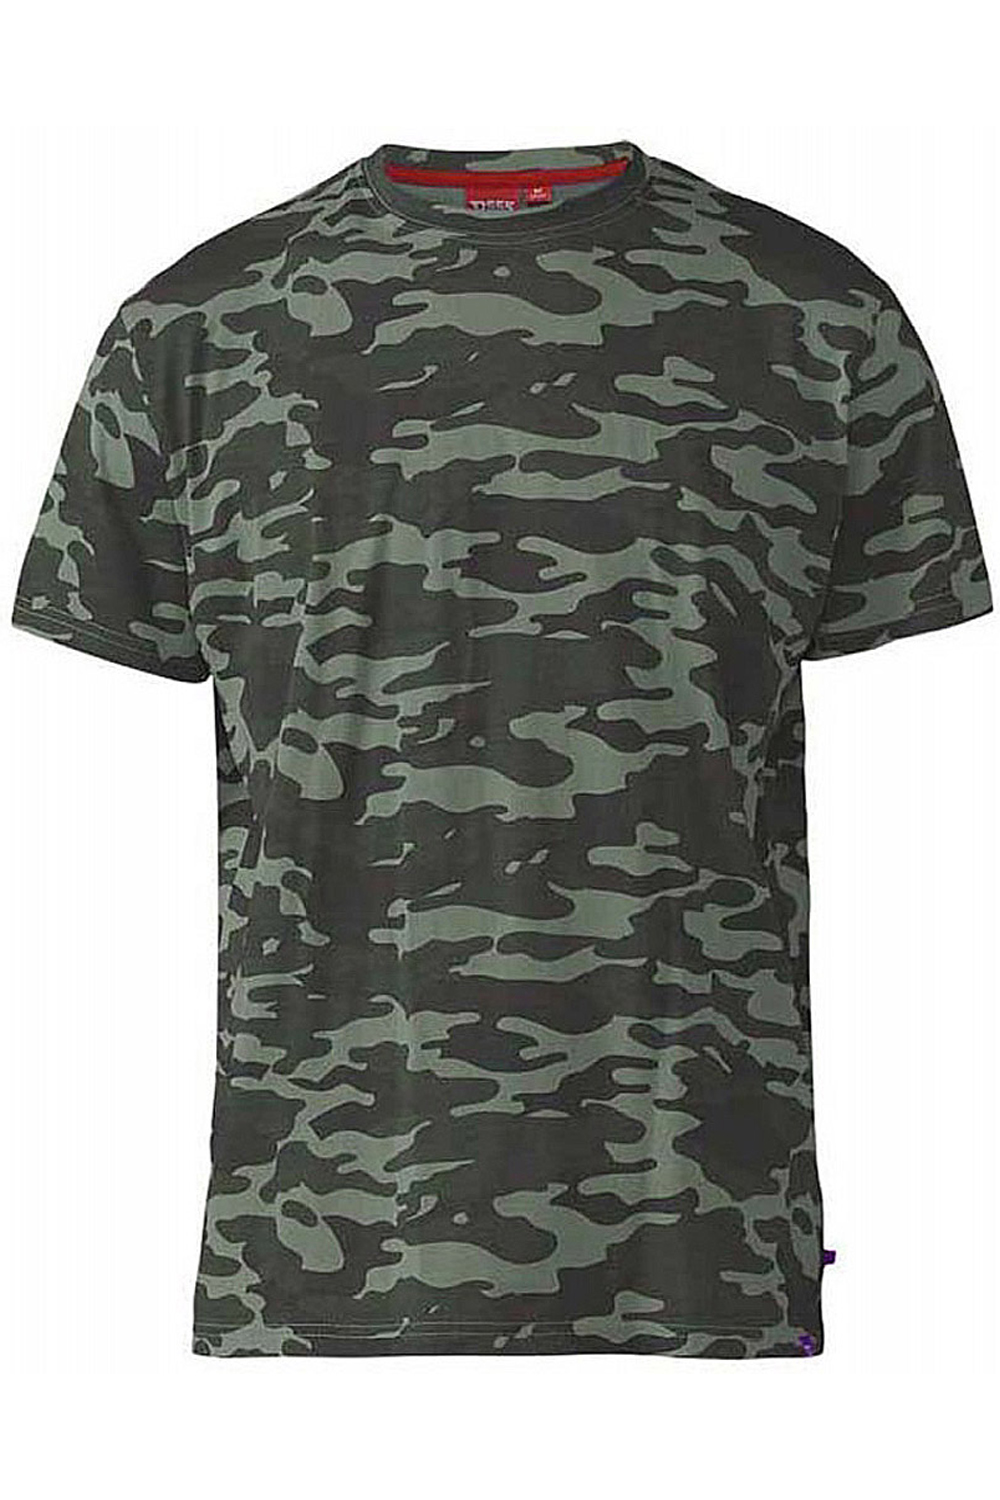 Duke-D555-Mens-Gaston-Big-Tall-King-Size-Camouflage-Army-Style-Camo-T-Shirt thumbnail 4